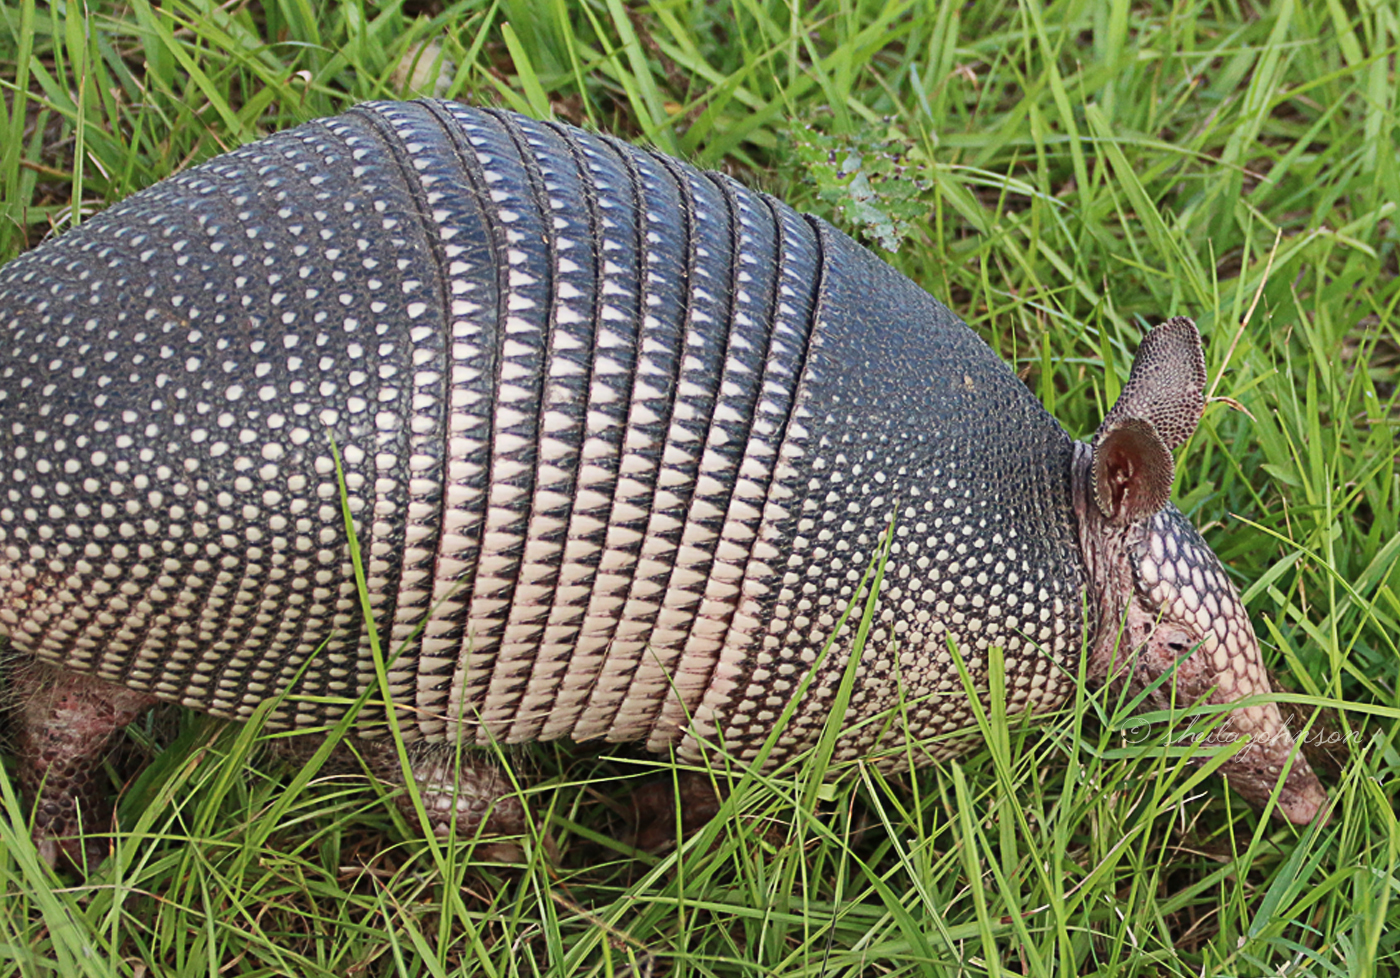 Here We Can See Why This Armadillo Species Is Dubbed The Nine-Banded Armadillo. Though The Armadillo Is Not Native To Florida, It Is Common. This One Lives At Allapattah Flats In Palm City, Florida.